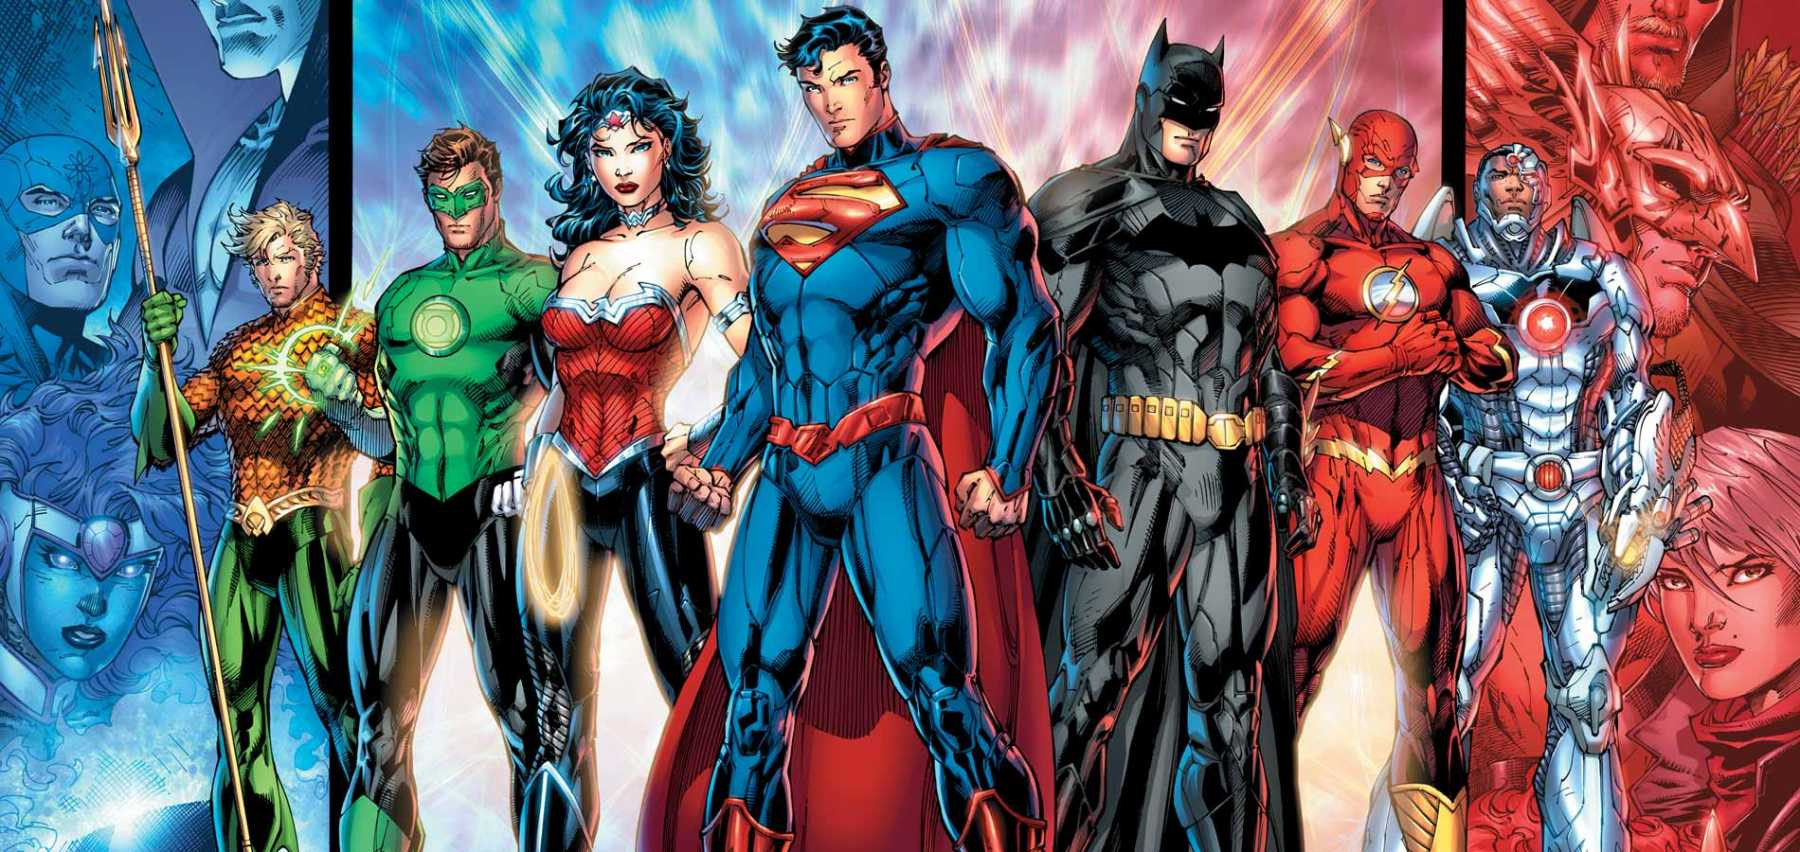 Marvel Who? DC Comics Releases Full Film Slate Dating To 2020 | DC Comics